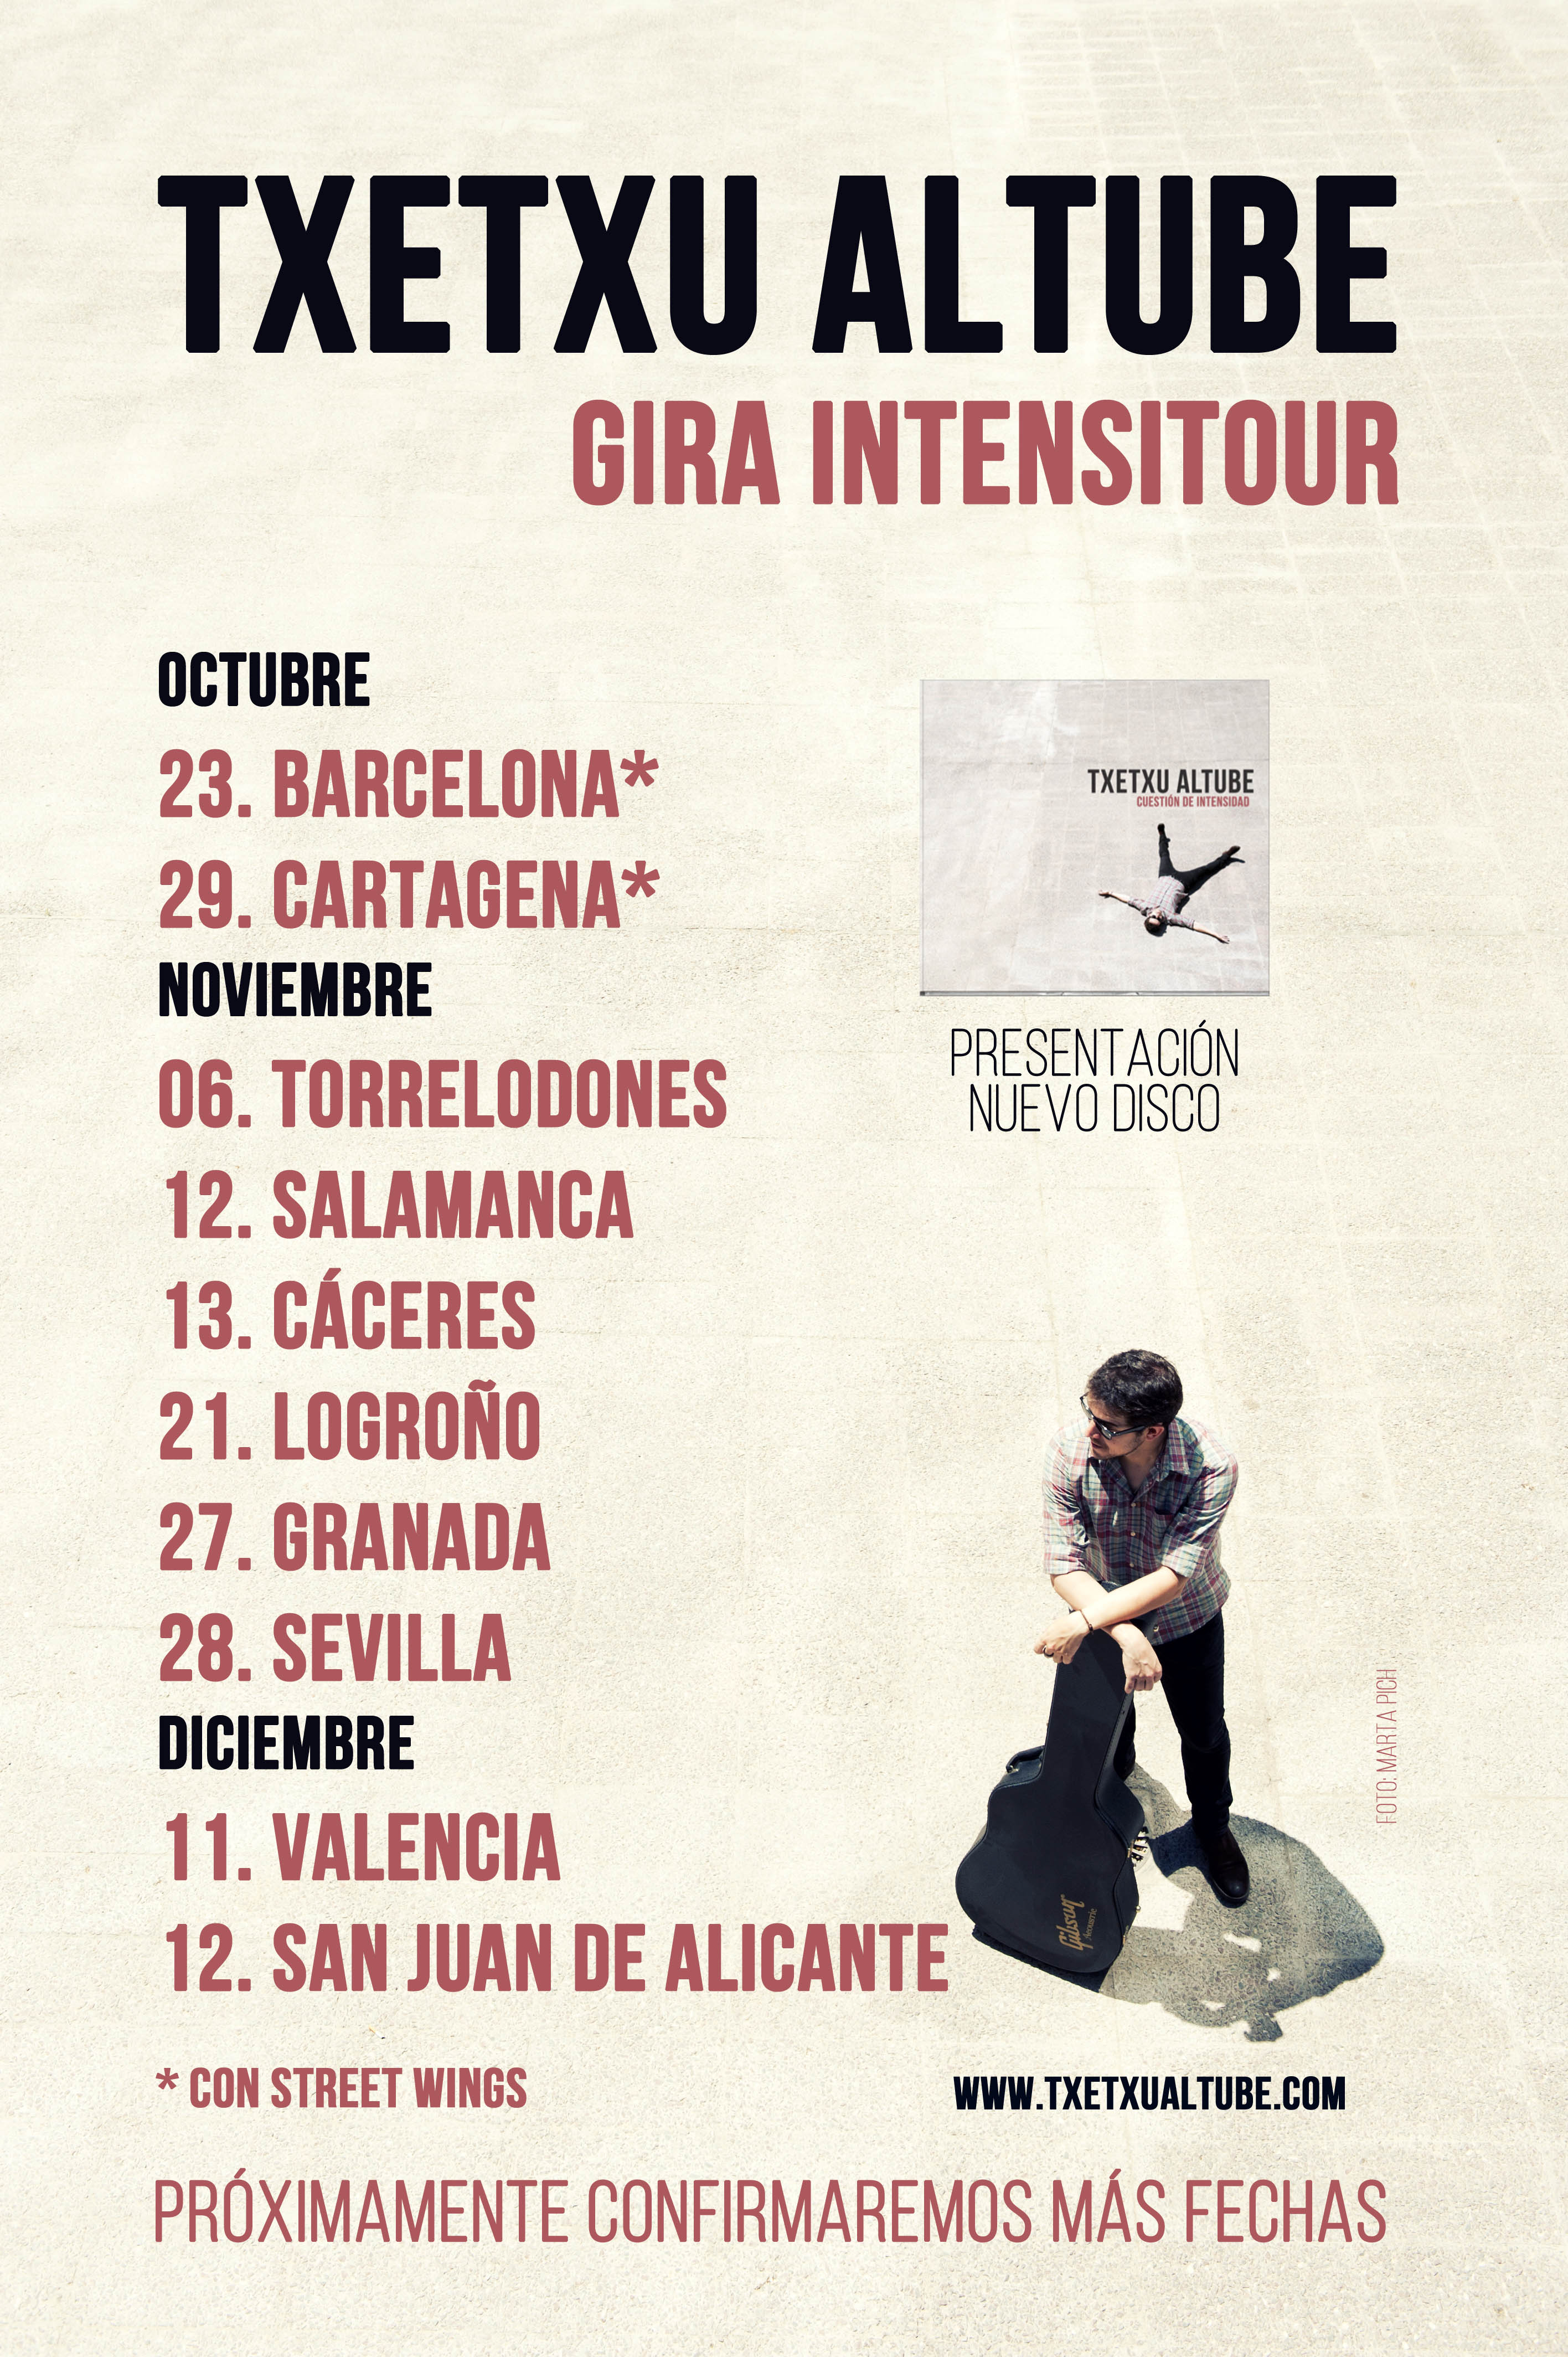 GIRA INTENSITOUR